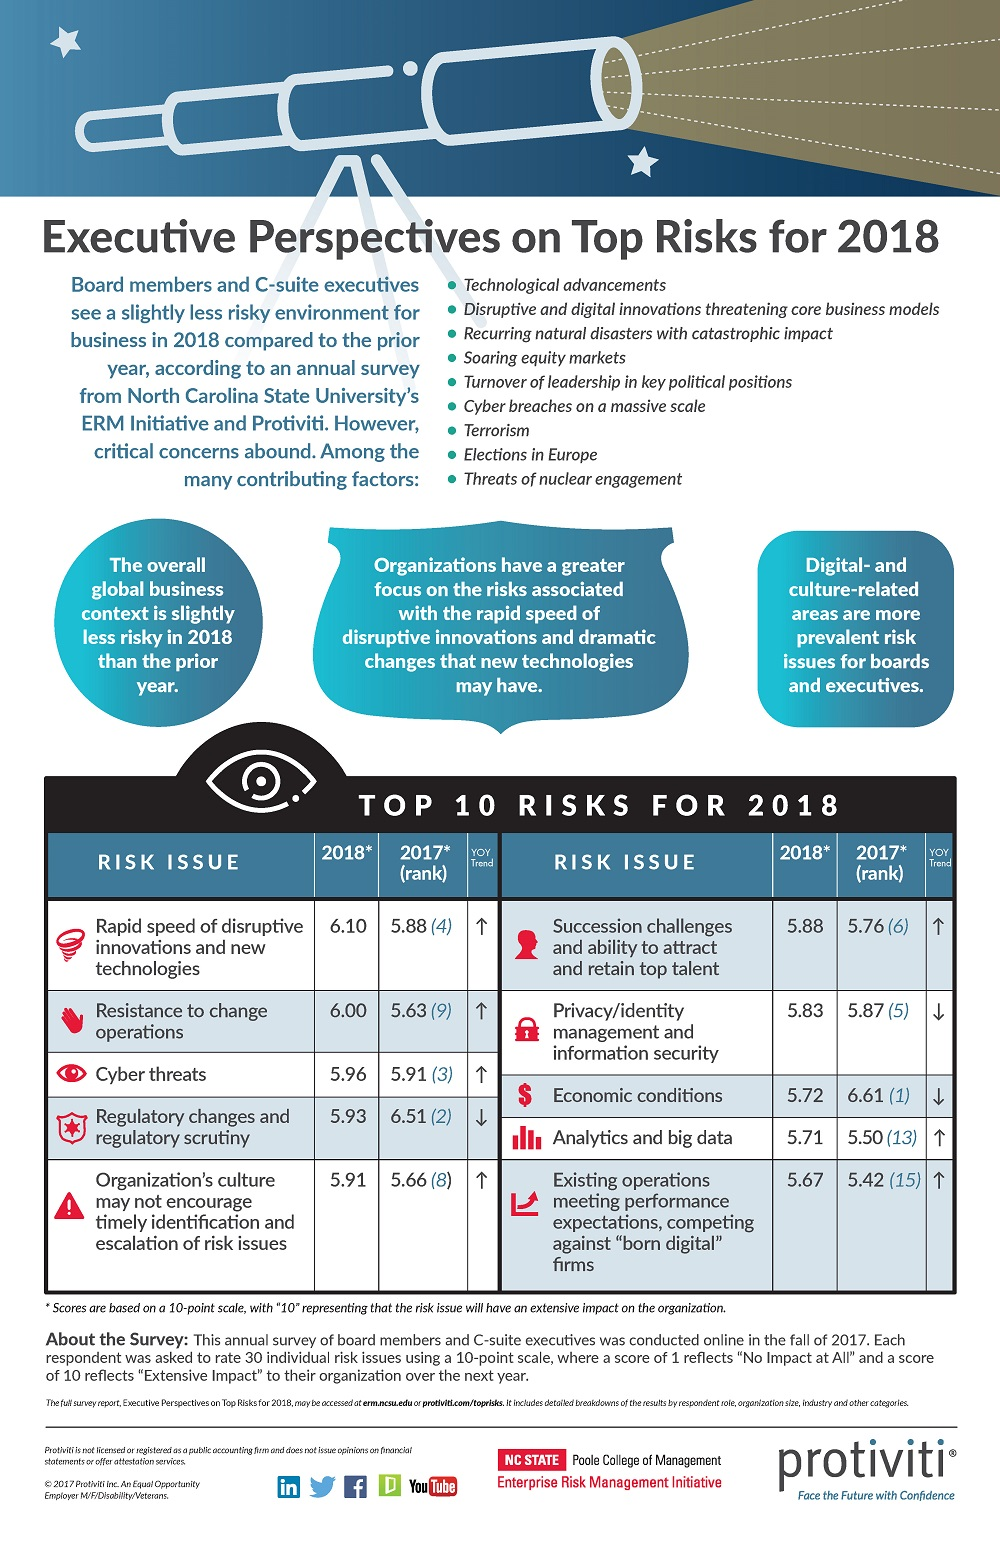 Executive Perspectives on Top Risks for 2018 Infographic